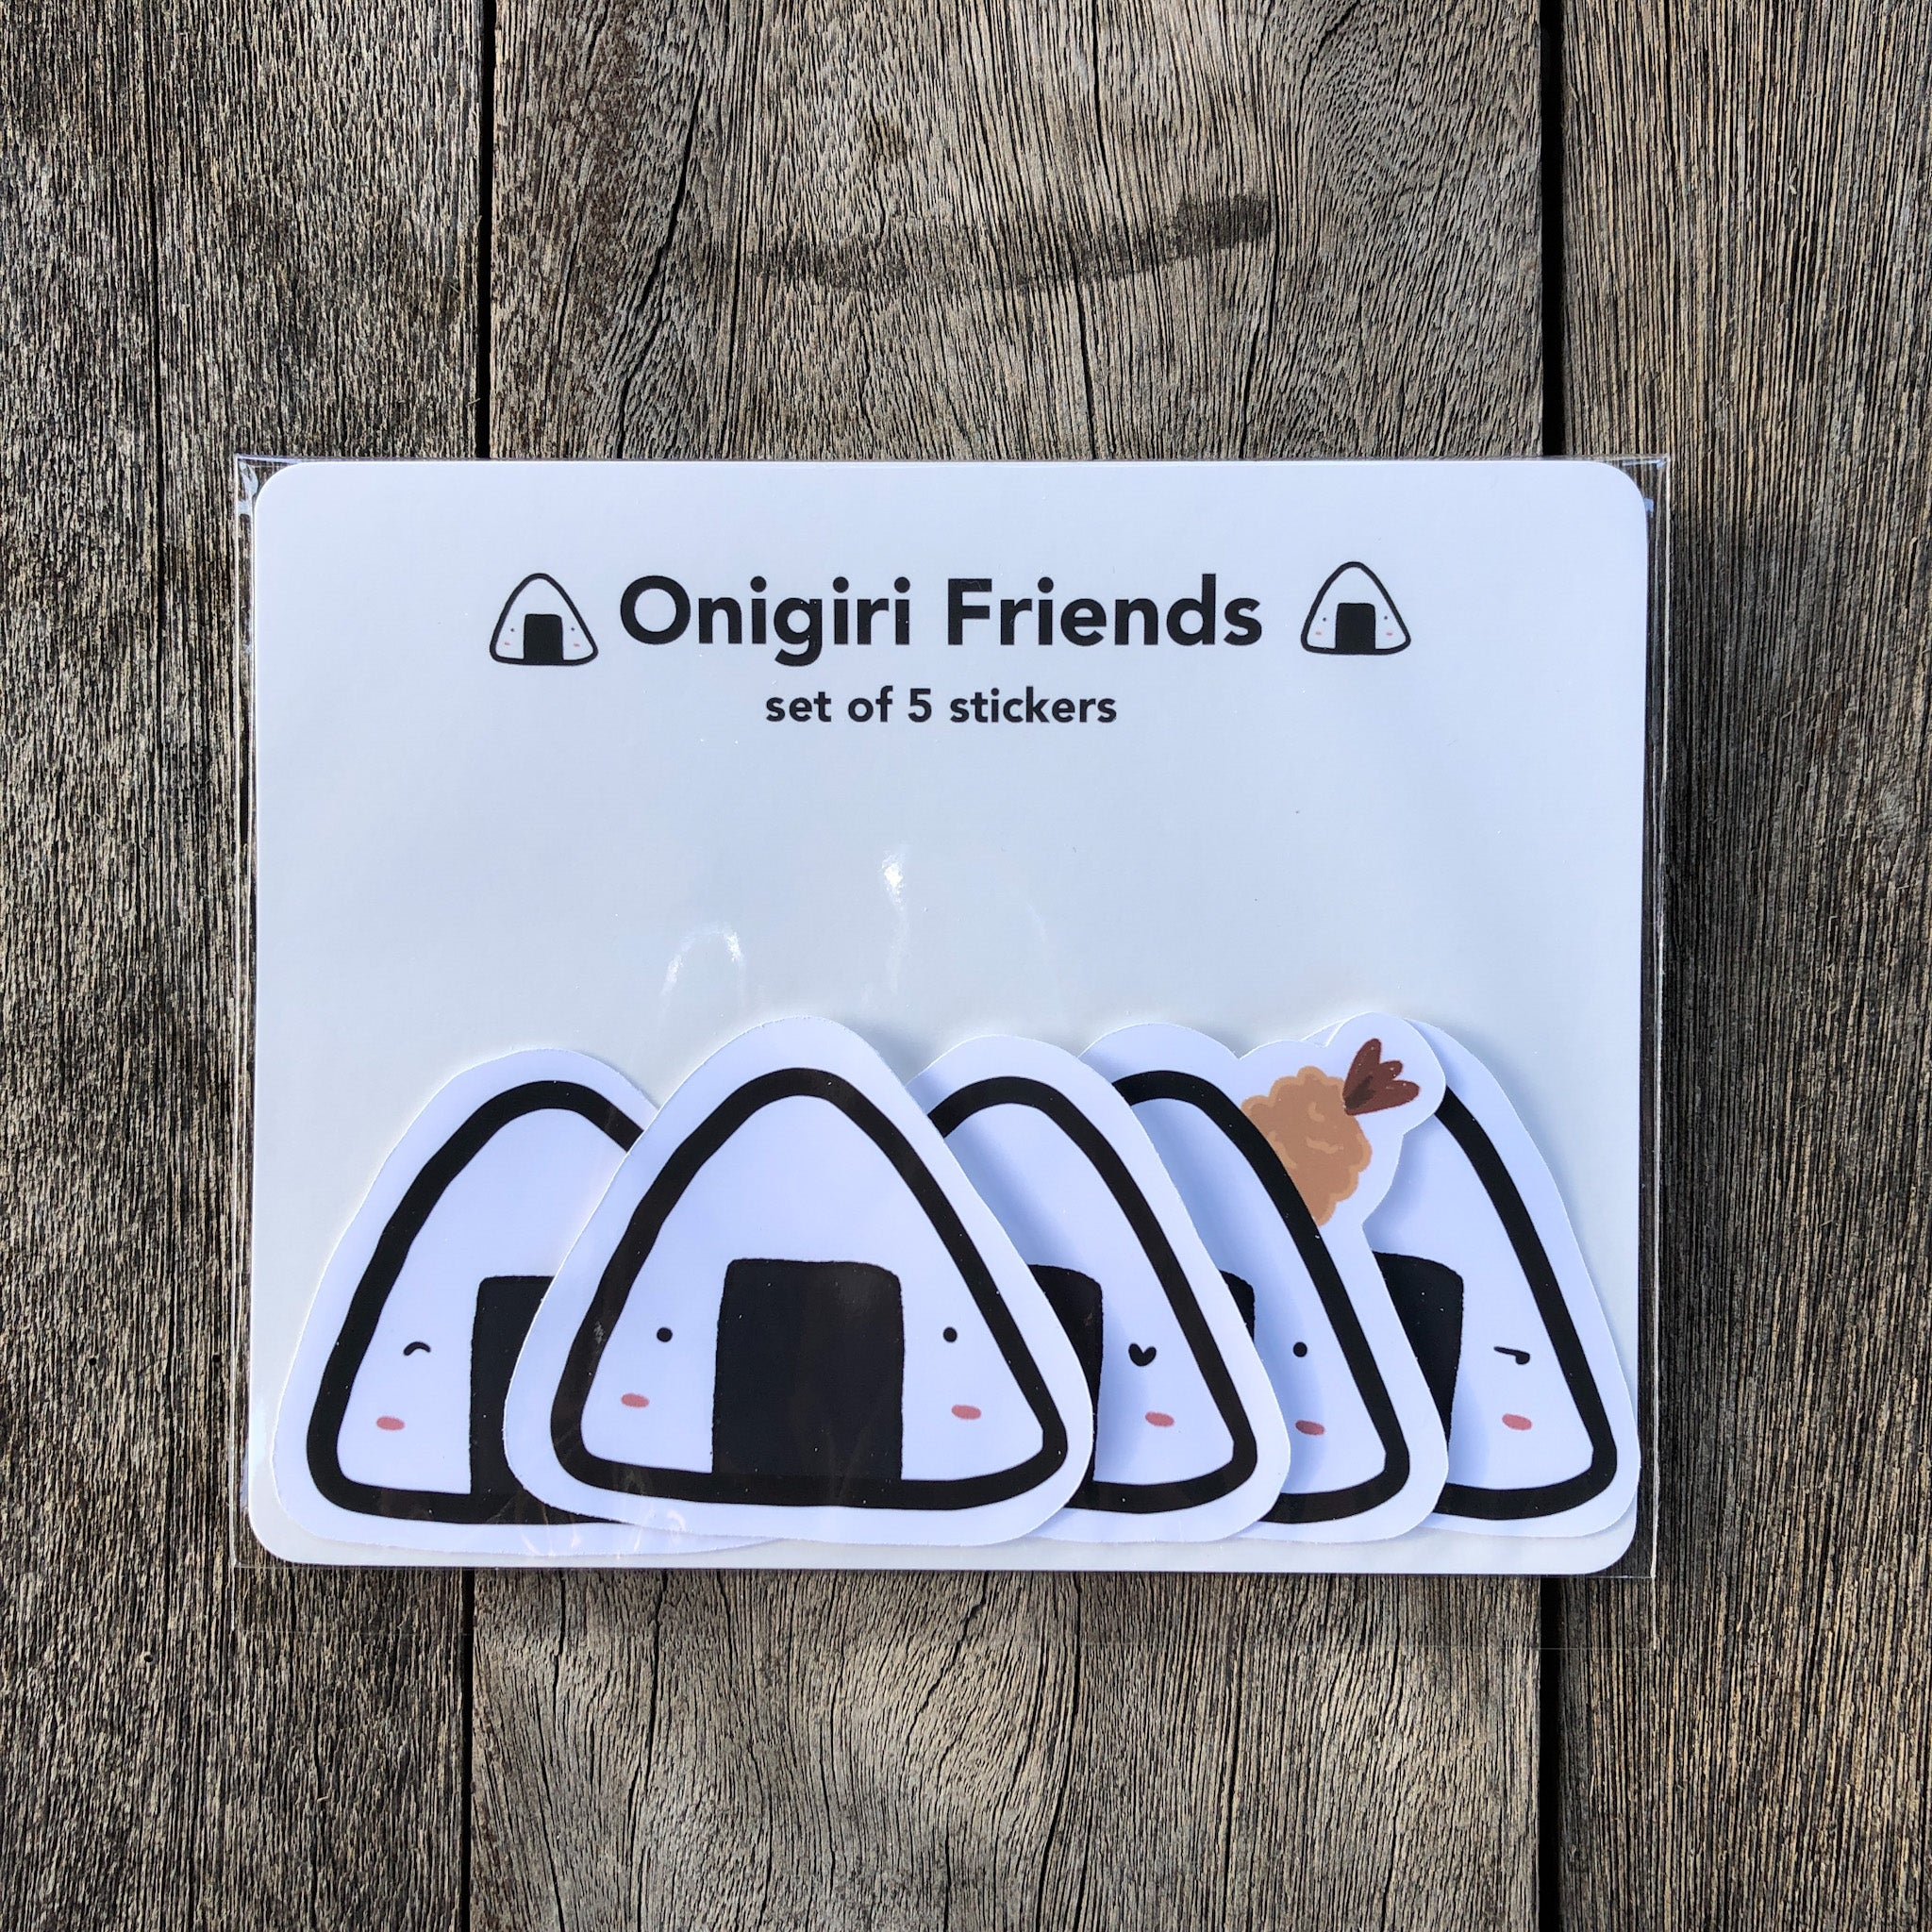 Onigiri Friends Sticker Pack